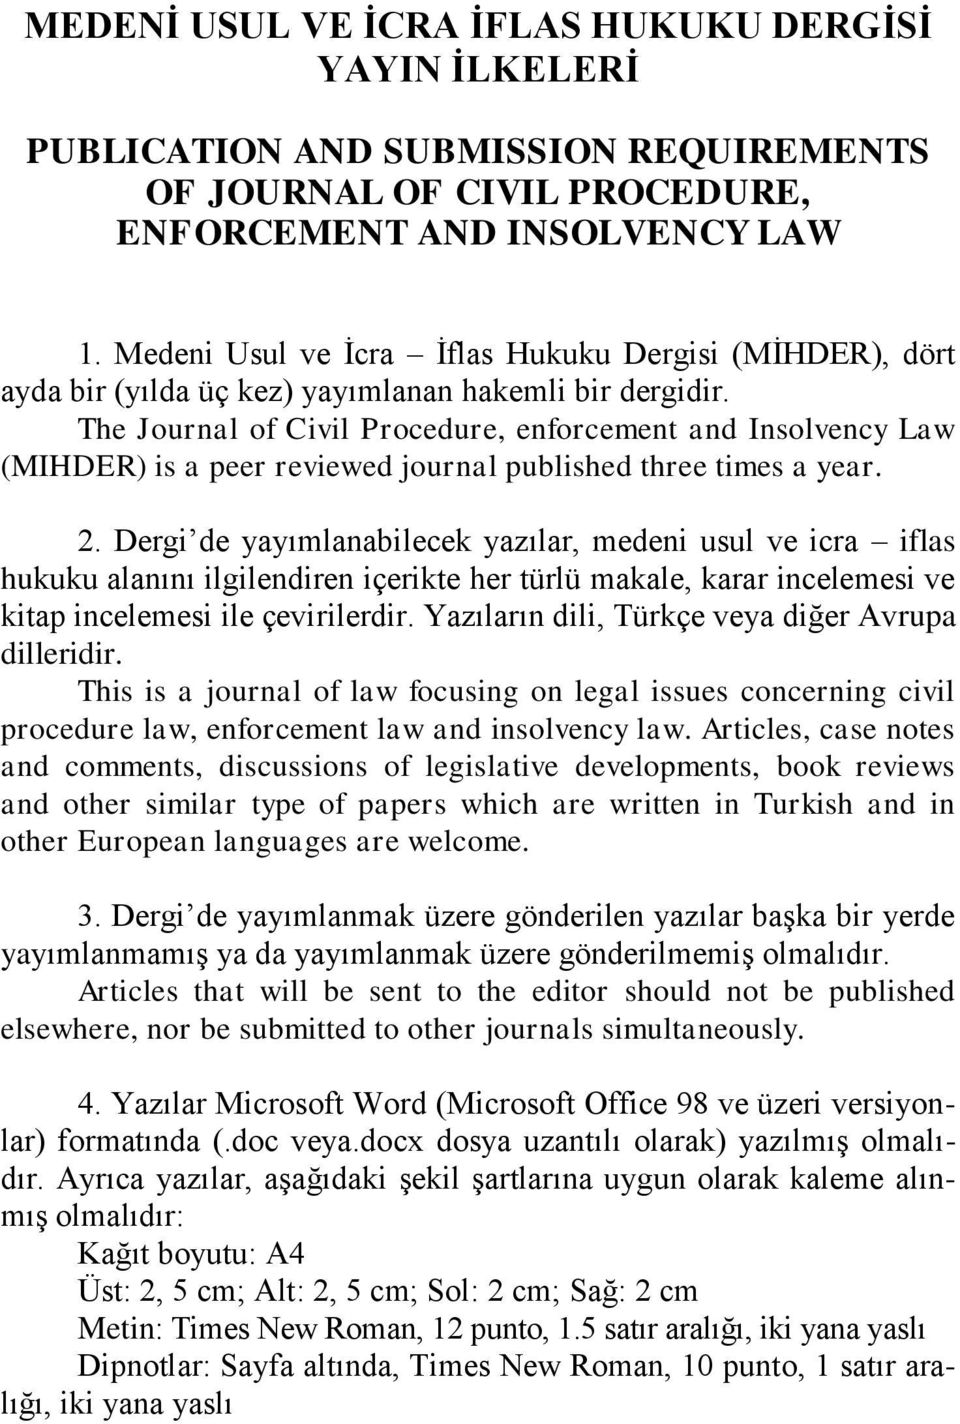 The Journal of Civil Procedure, enforcement and Insolvency Law (MIHDER) is a peer reviewed journal published three times a year. 2.